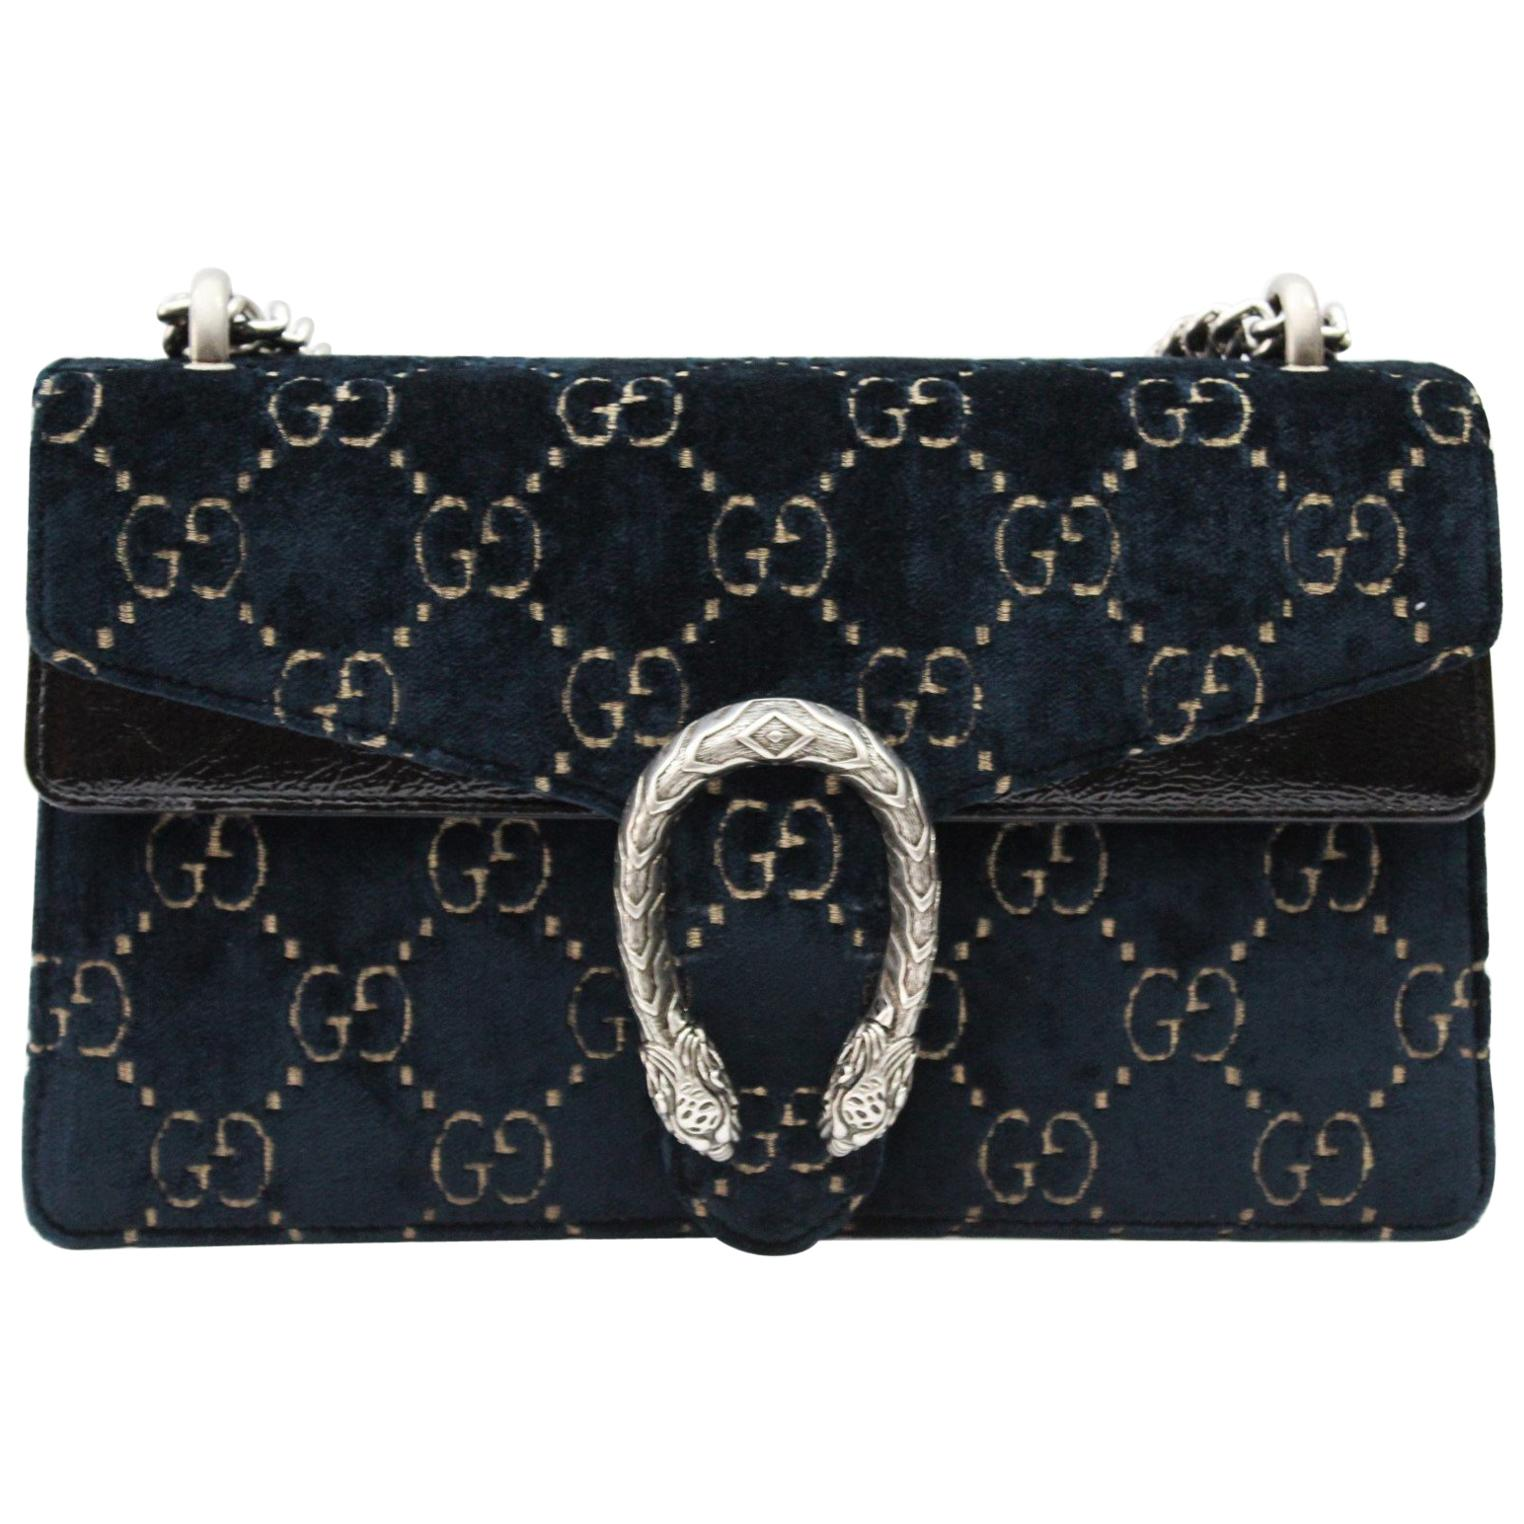 634165fa7f75 Gucci Shoulder Bag Dionysus Velvet GG at 1stdibs